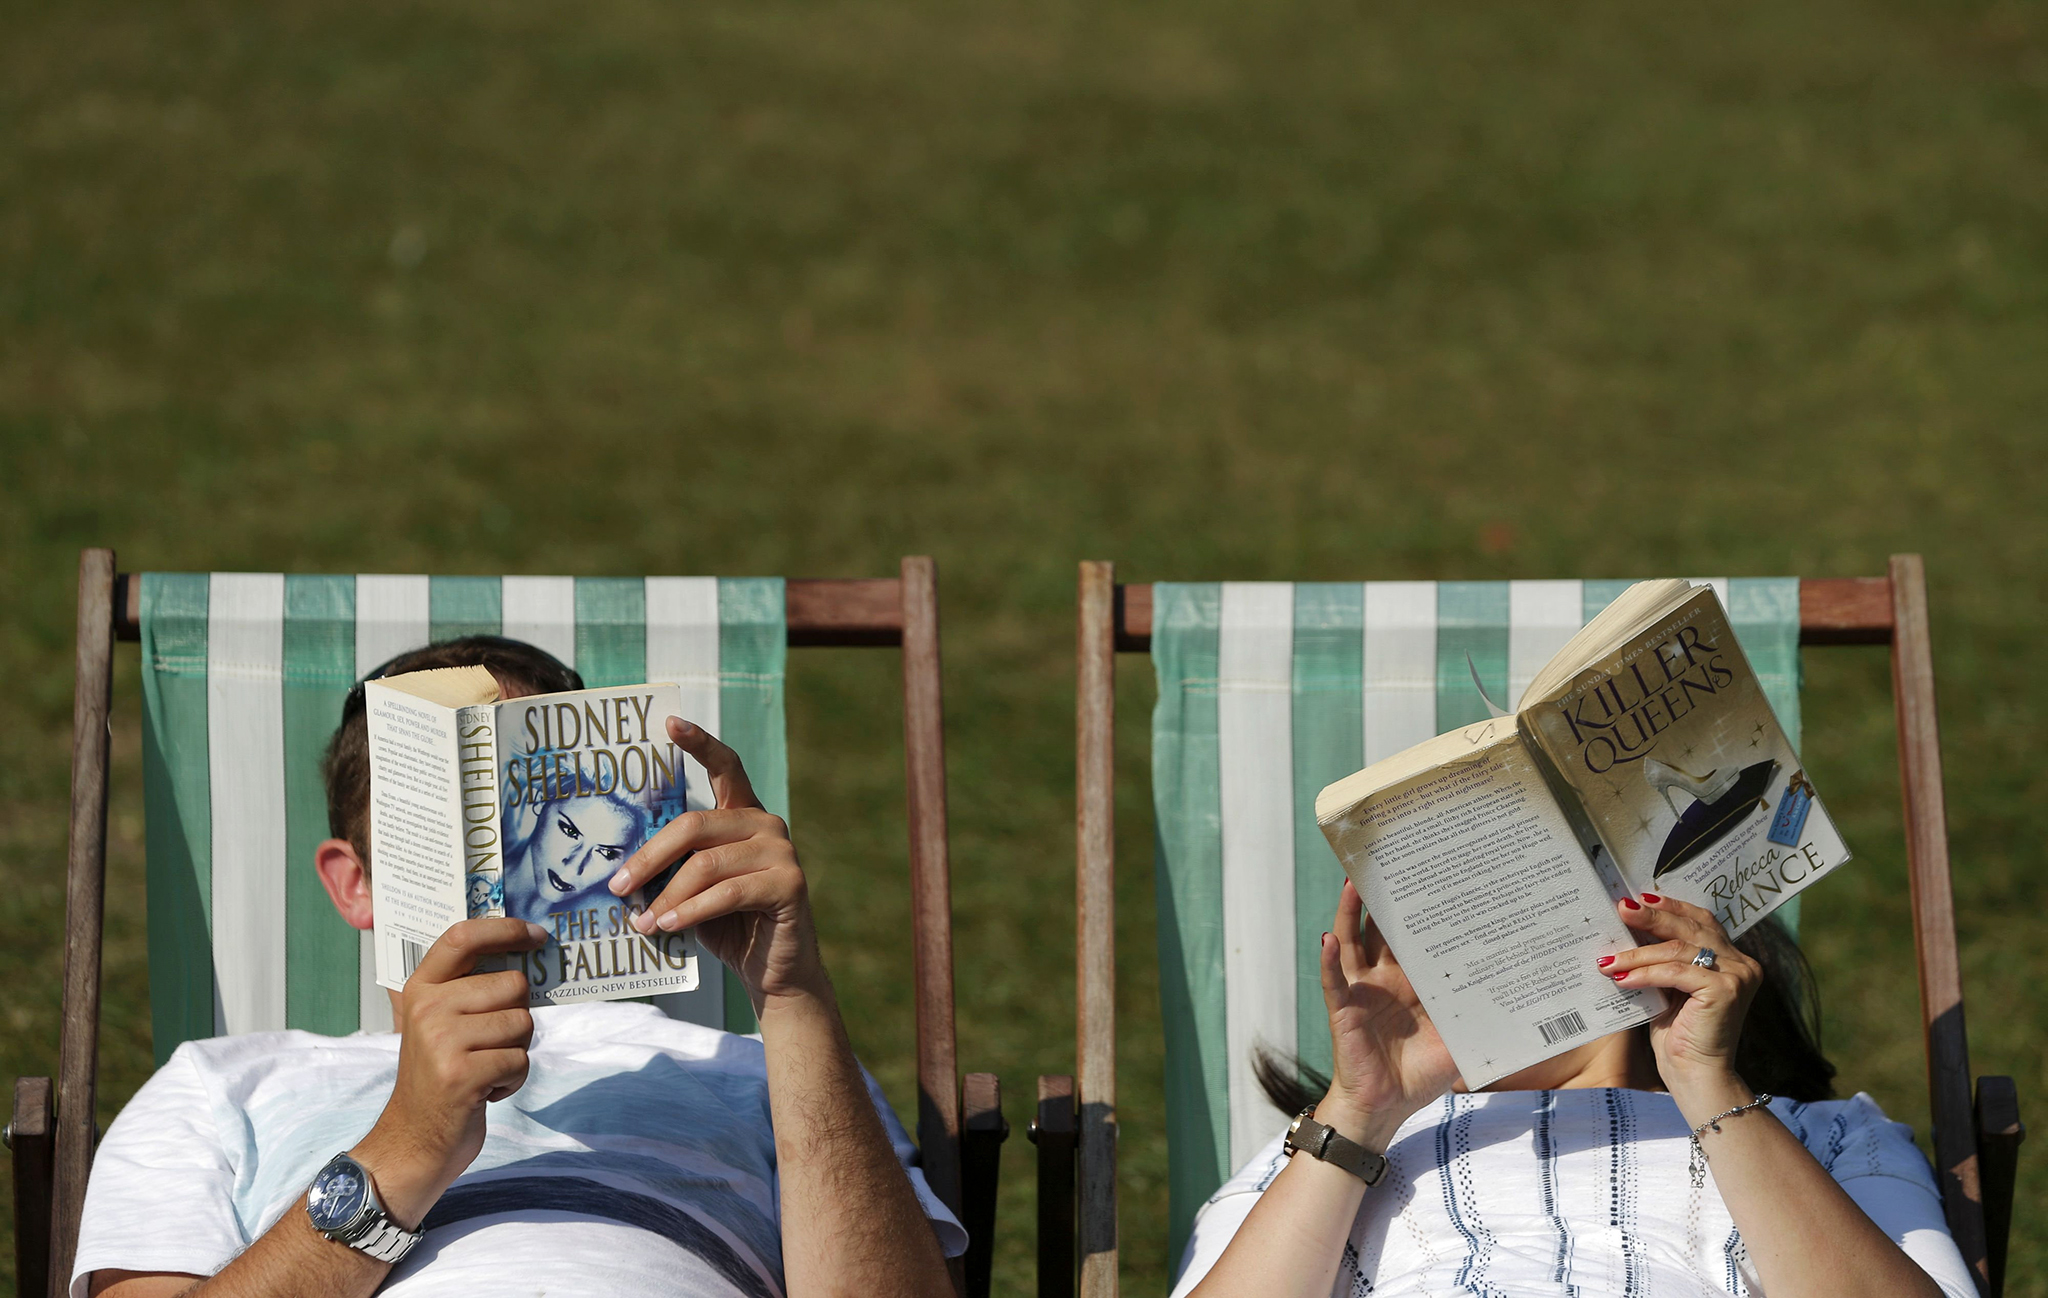 A couple read on deck chairs in Green Park in central London as temperatures soar on September 14, 2016.  Britain continued to enjoy sizzling heat on September 14, after temperatures soared to to 34.4 in Kent south east England on September 13, the hottest September day in over a century.  / AFP PHOTO / Daniel Leal-OlivasDANIEL LEAL-OLIVAS/AFP/Getty Images